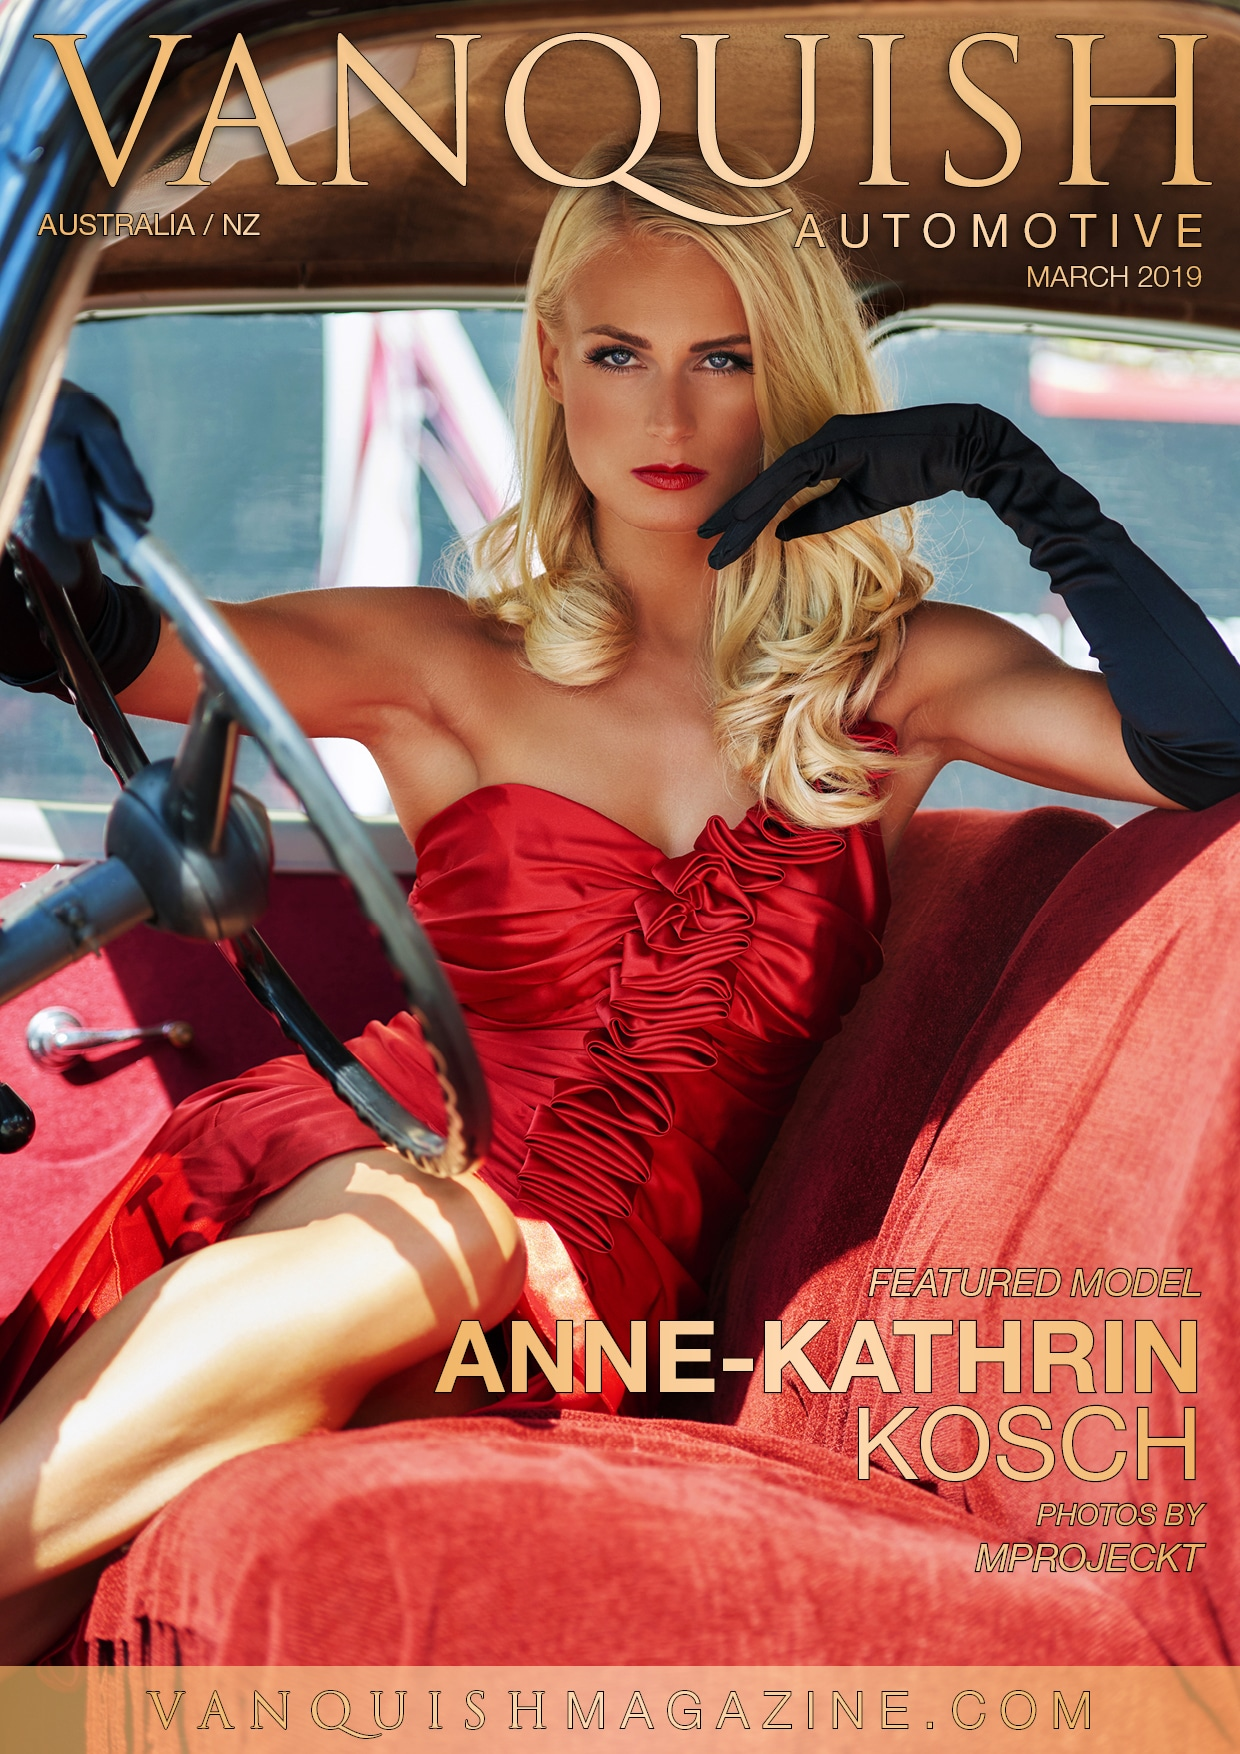 Vanquish Automotive - March 2019 - Anne-Kathrin Kosch 1